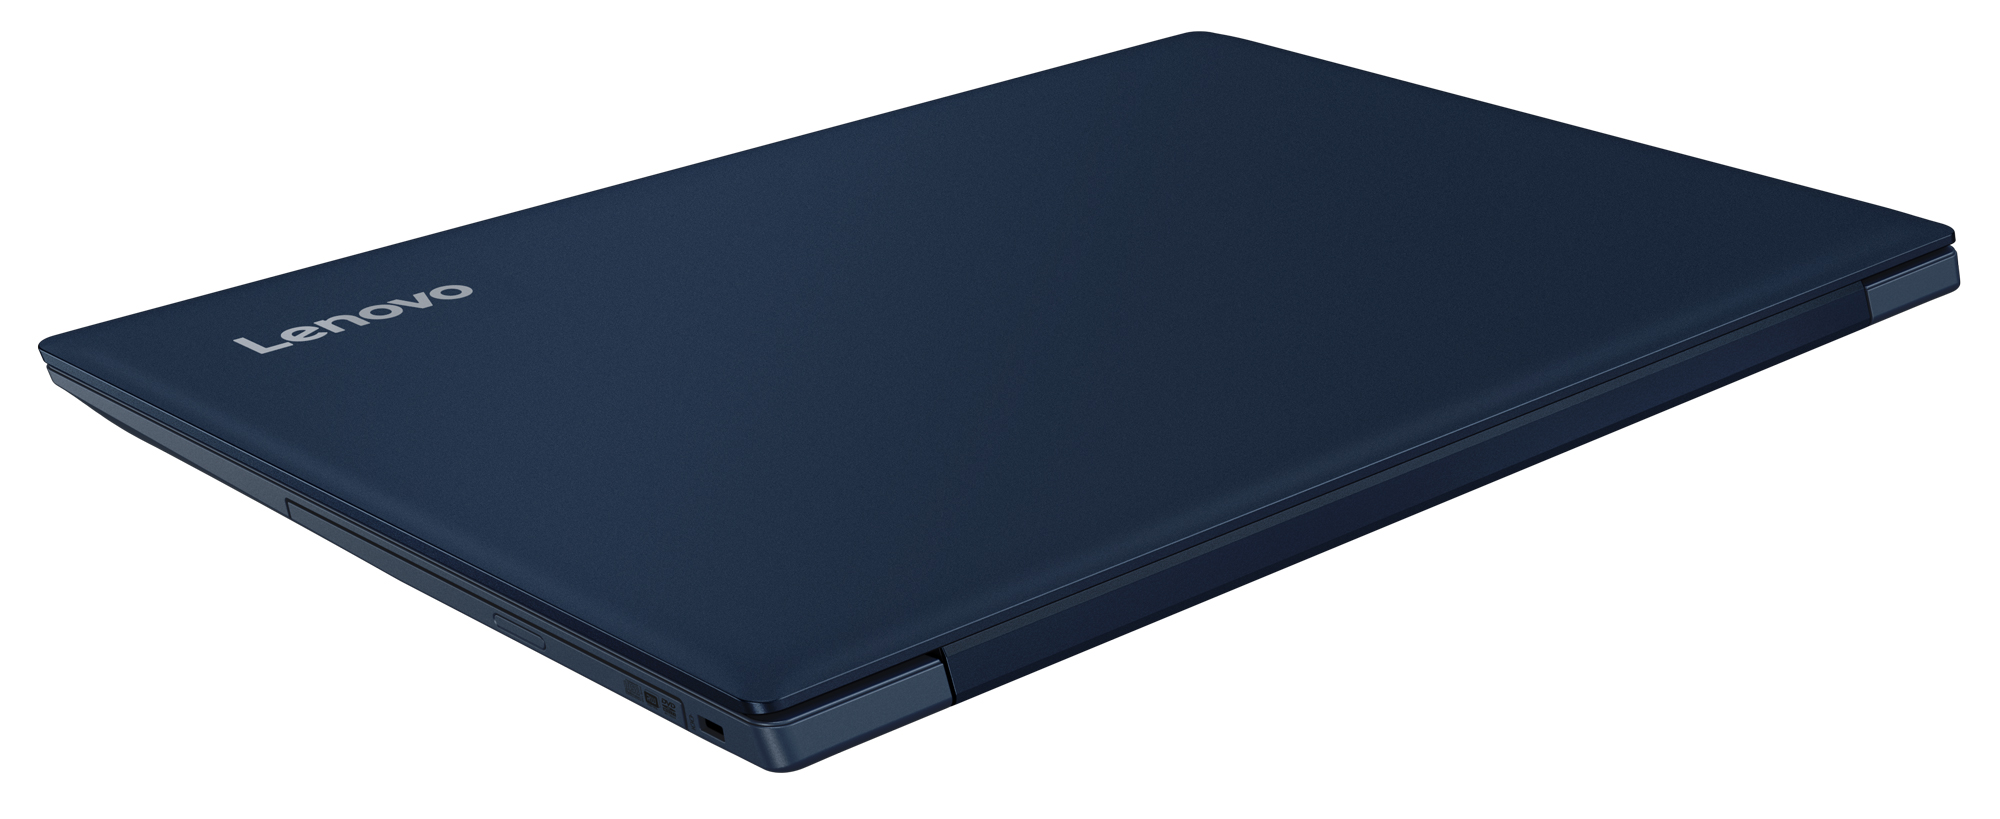 Фото  Ноутбук Lenovo ideapad 330-15 Midnight Blue (81DE01HURA)